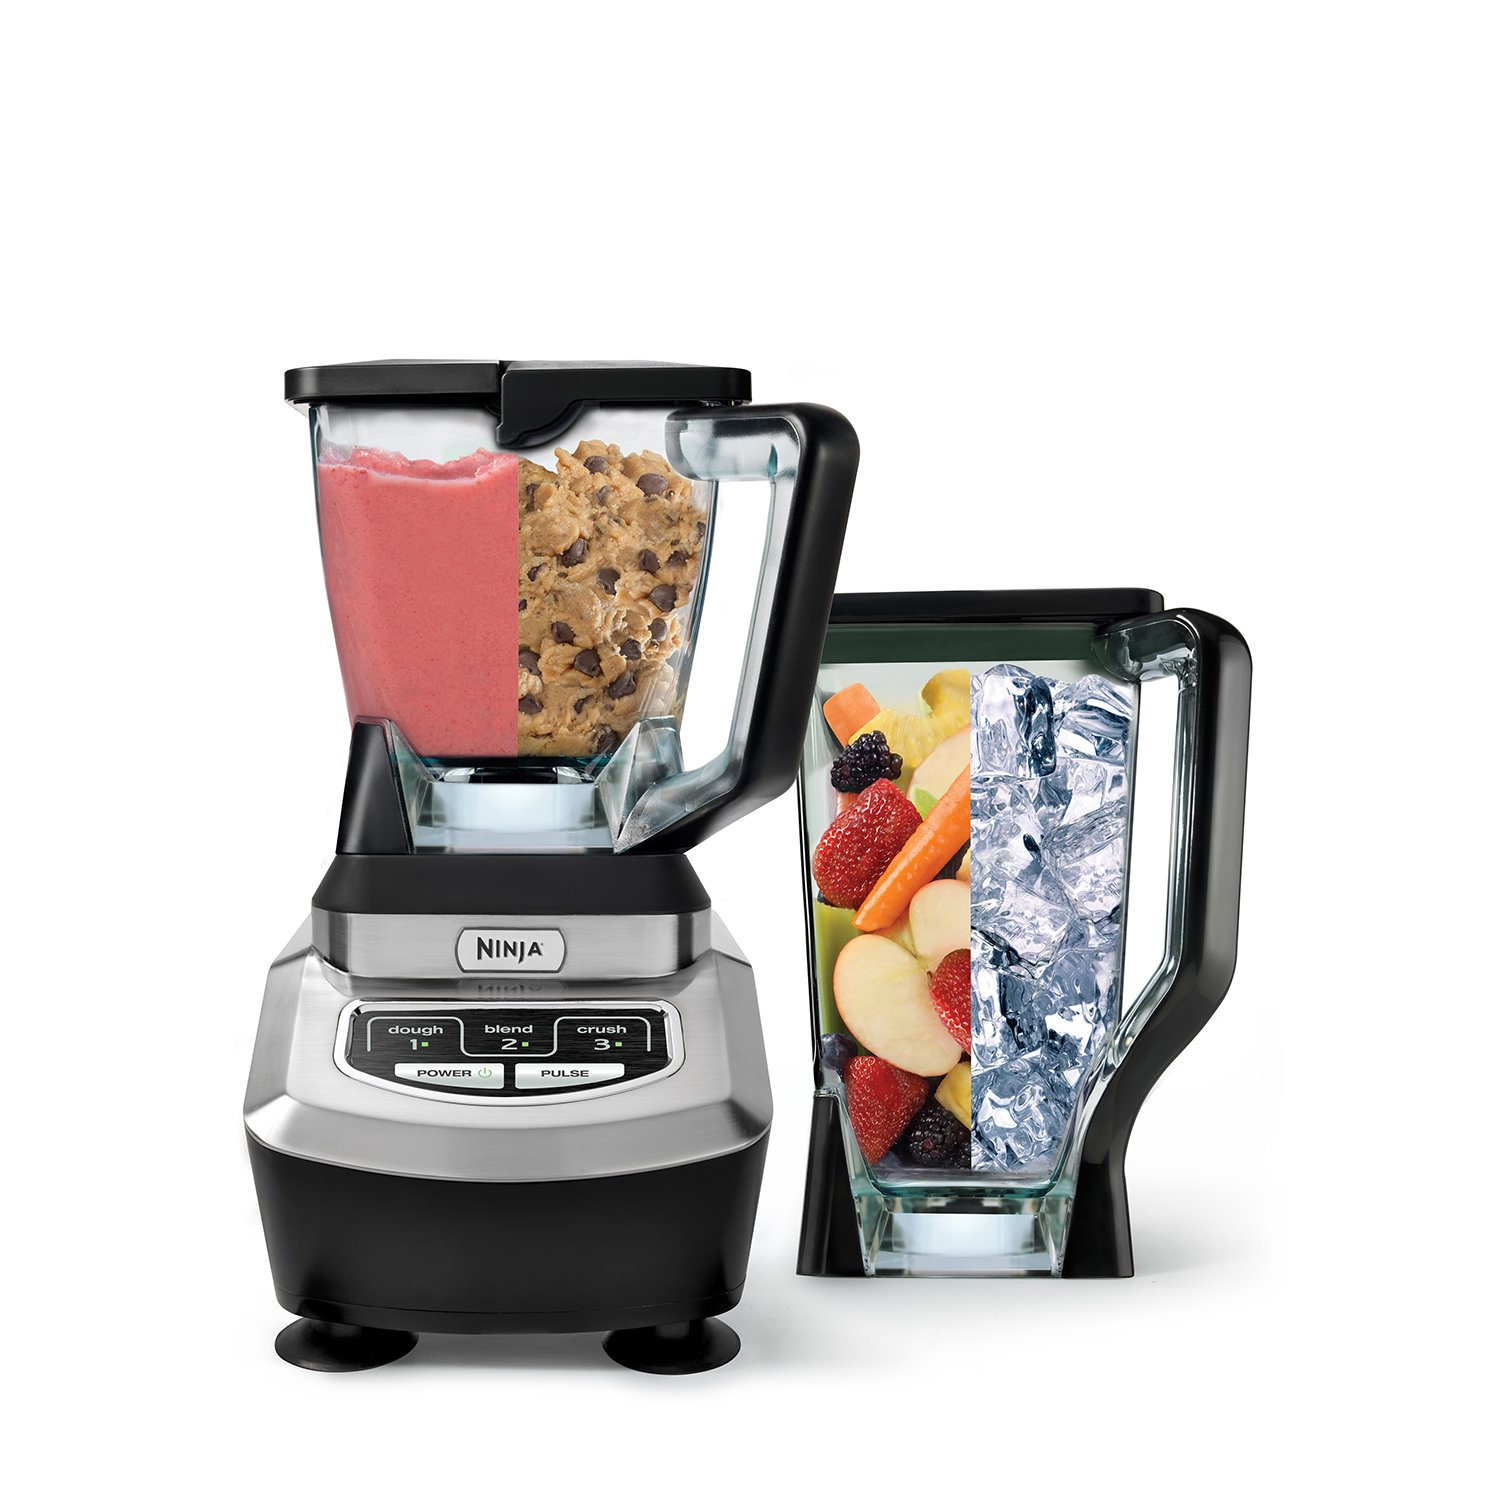 new ninja kitchen system 1200 professional blender food. Black Bedroom Furniture Sets. Home Design Ideas